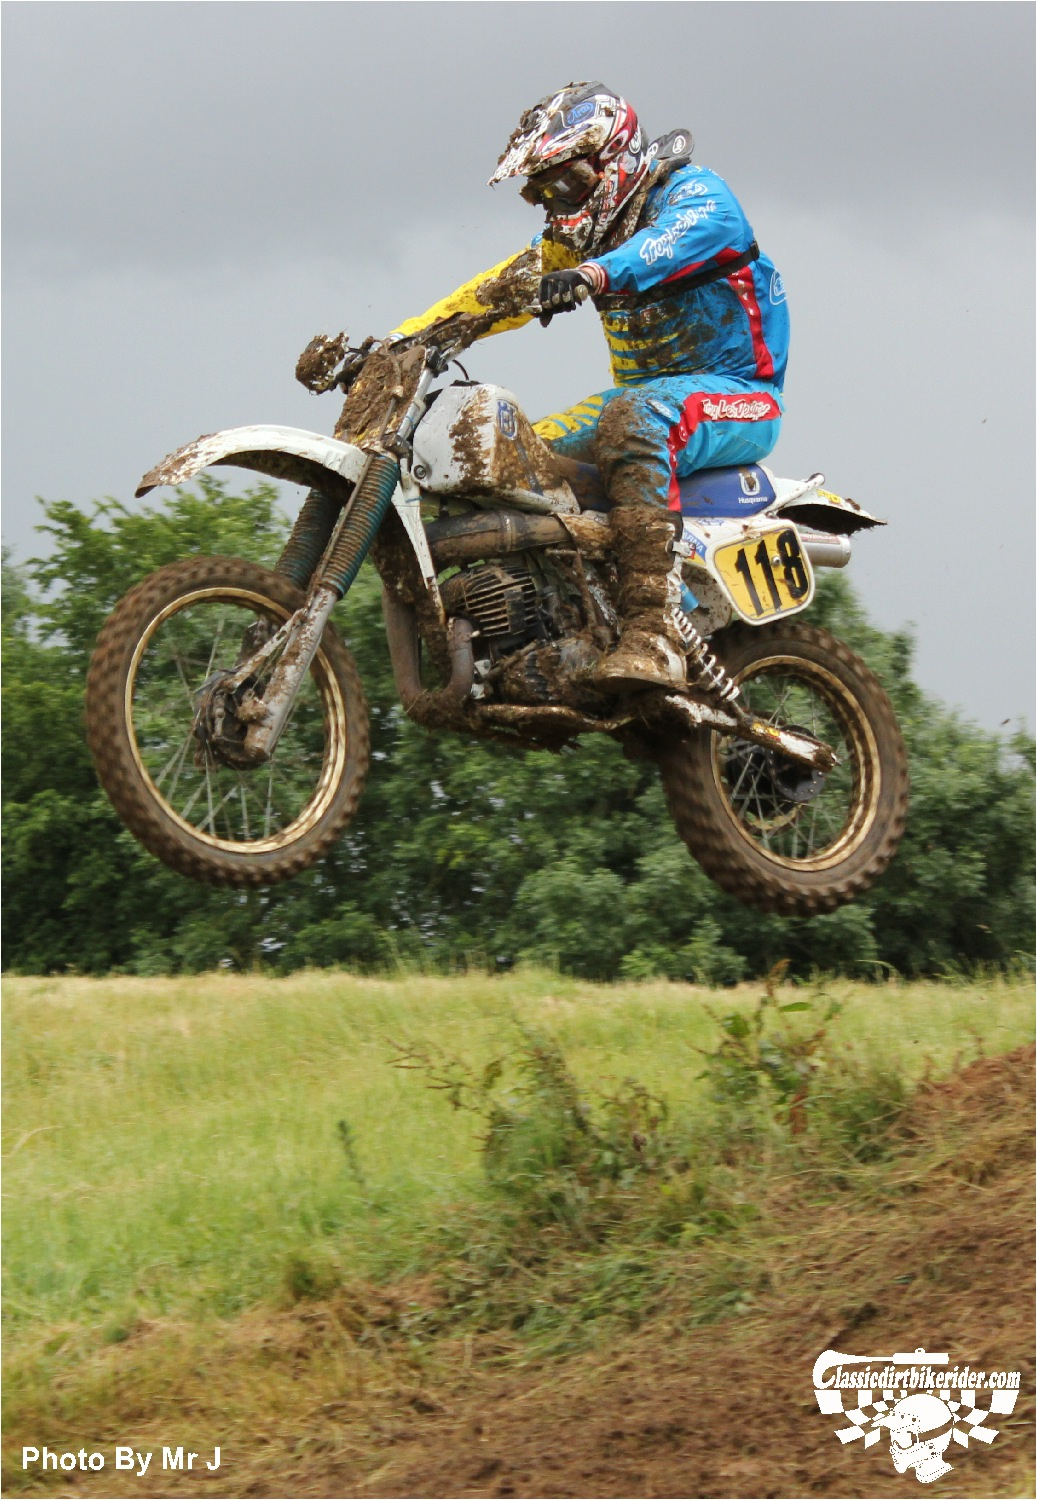 king of the castle 2015 photos Farleigh Castle twinshock motocross classicdirtbikerider.com 75